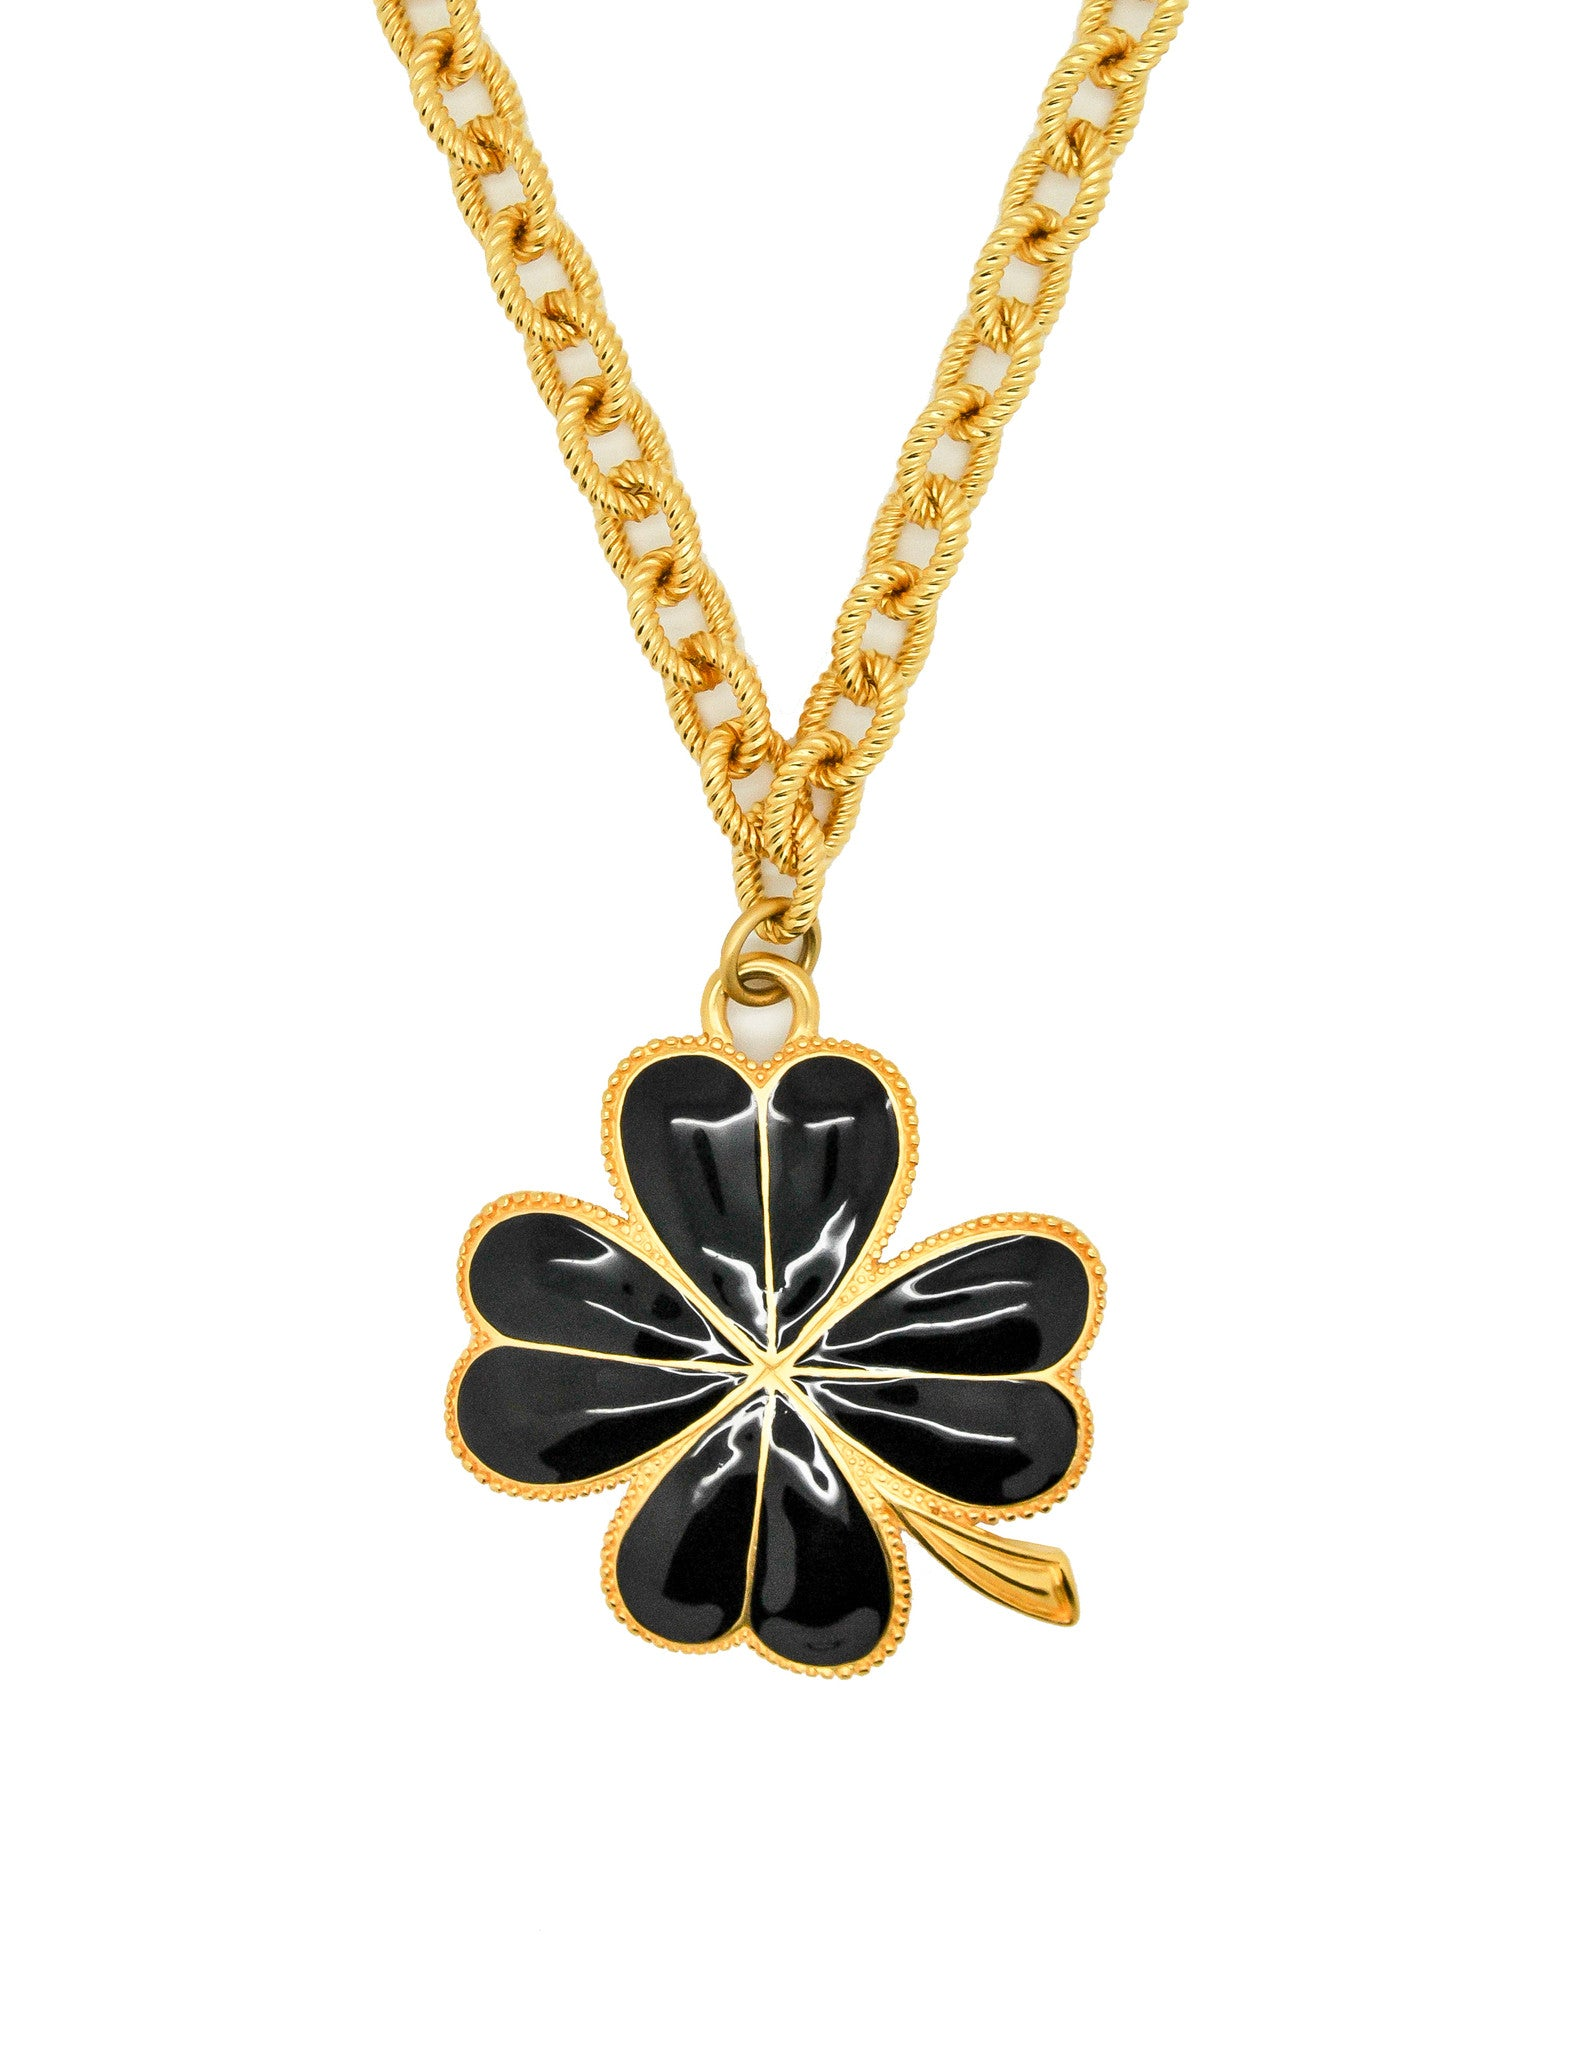 bling necklace jewelry chain vermeil clover gold with pendant key four leaf